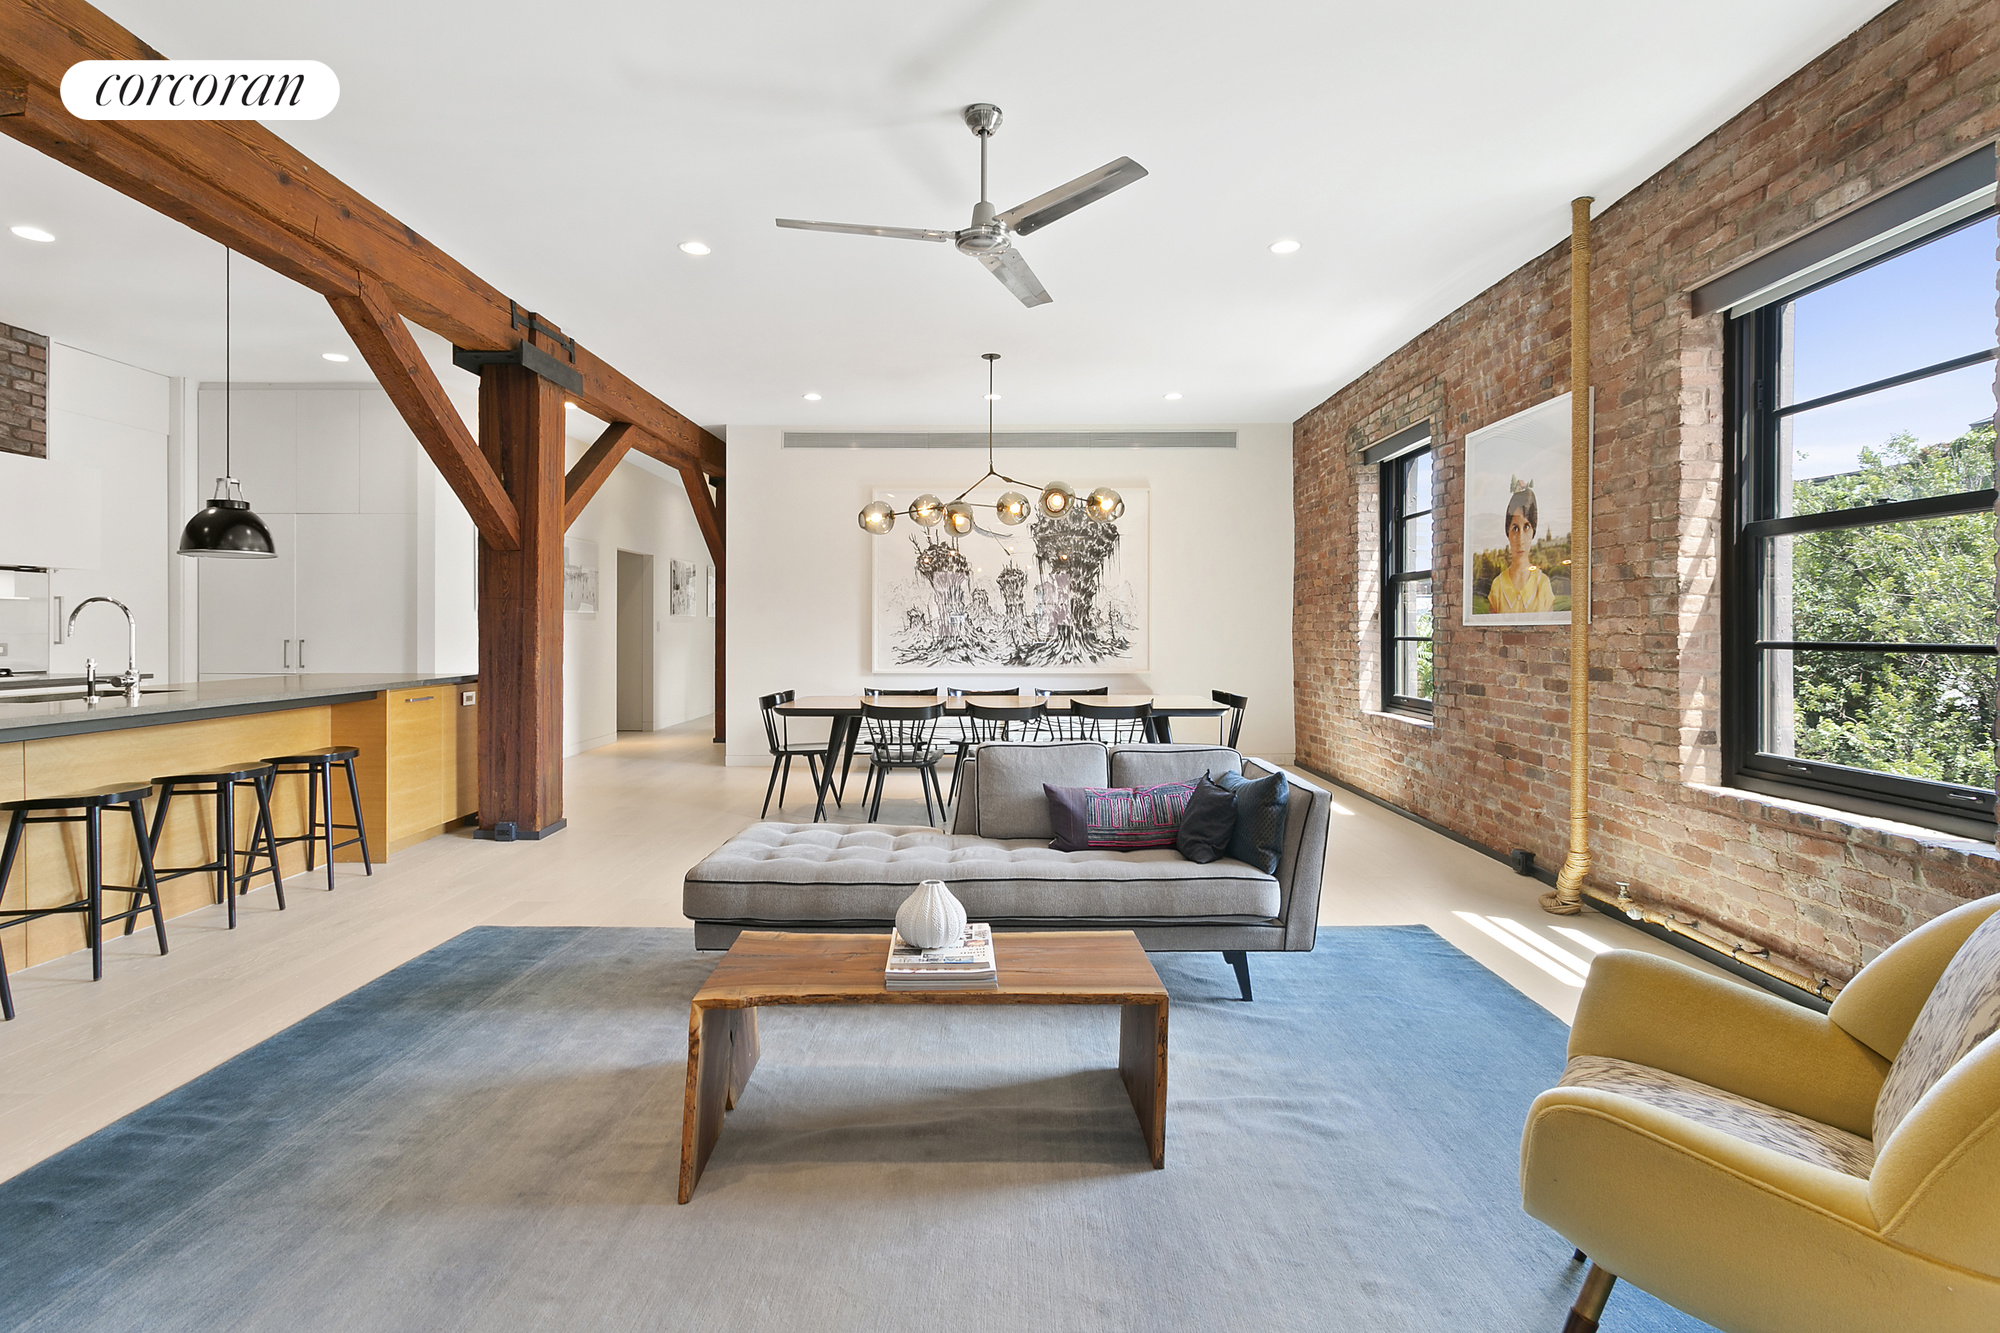 West Village loft living is yours in this gorgeous three-bedroom, three-bathroom home combining original architectural details, recent renovations, great light, and substantial storage in a supremely enviable location.Encircled by 13 oversized windows on three exposures, the sprawling 2,500-square-foot layout basks in lovely sunlight and neighborhood views throughout. Exposed beams, brick, and high ceilings nod to the loft's turn-of-the-century origins, while new hardwood floors and other modern updates make it a sanctuary of contemporary living.The key-locked elevator delivers you to the sweeping corner great room featuring southern and western exposures and Henrybuilt custom shelving. Generous proportions provide plenty of room for living and dining areas. Set between the home's dramatic beams, the gourmet open kitchen, also by Henrybuilt, features basaltina countertops and appliances by Viking, Miele, and Sub-Zero. The massive island/breakfast bar provides casual dining for five. Modern recessed lighting runs throughout. Enjoy treetop serenity in the master suite where a room-size walk-in closet, three more closets, and a wall of drawers attend to storage. An en suite bathroom features a lavish rain shower, steam shower, and double vanity. Two additional bedrooms have easy access to two more full baths across the hall. Several more closets, modern central air, and a large laundry room with a vented washer-dryer and utility sink round out this comfortable and beautiful home. The layout and numerous exposures could accommodate a fourth bedroom if desired. Built in 1909, this charming brick warehouse is a boutique, pet-friendly co-op offering the unit an additional 50-square-foot private/locked basement storage room, a bike room and a common roof deck with a grill and expansive city views. Set in a quiet spot in the Greenwich Village Historic District, the best of West Village shopping, dining, and nightlife are steps away. Hudson River Park's hundreds of acres of w